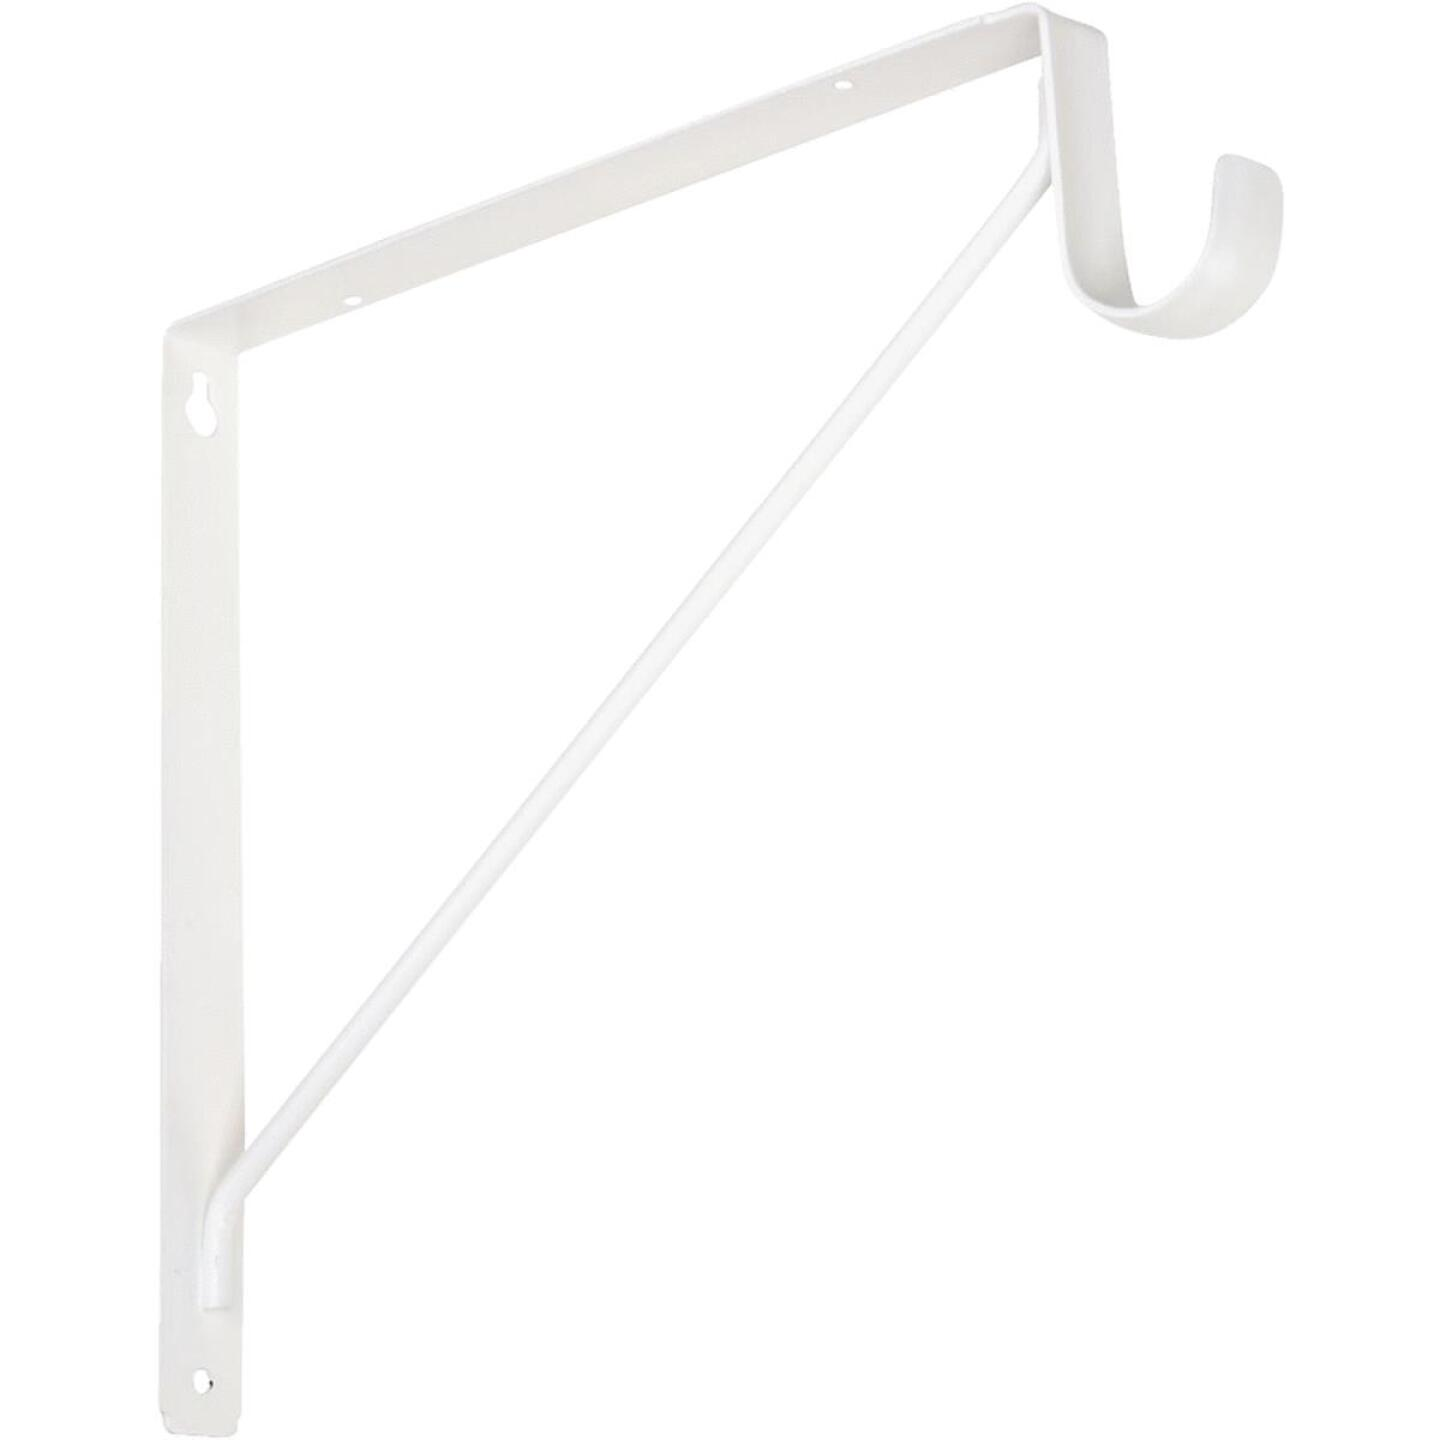 Knape & Vogt 10 In. H. x 11 In. D. Fixed Shelf & Rod Bracket, White Image 1